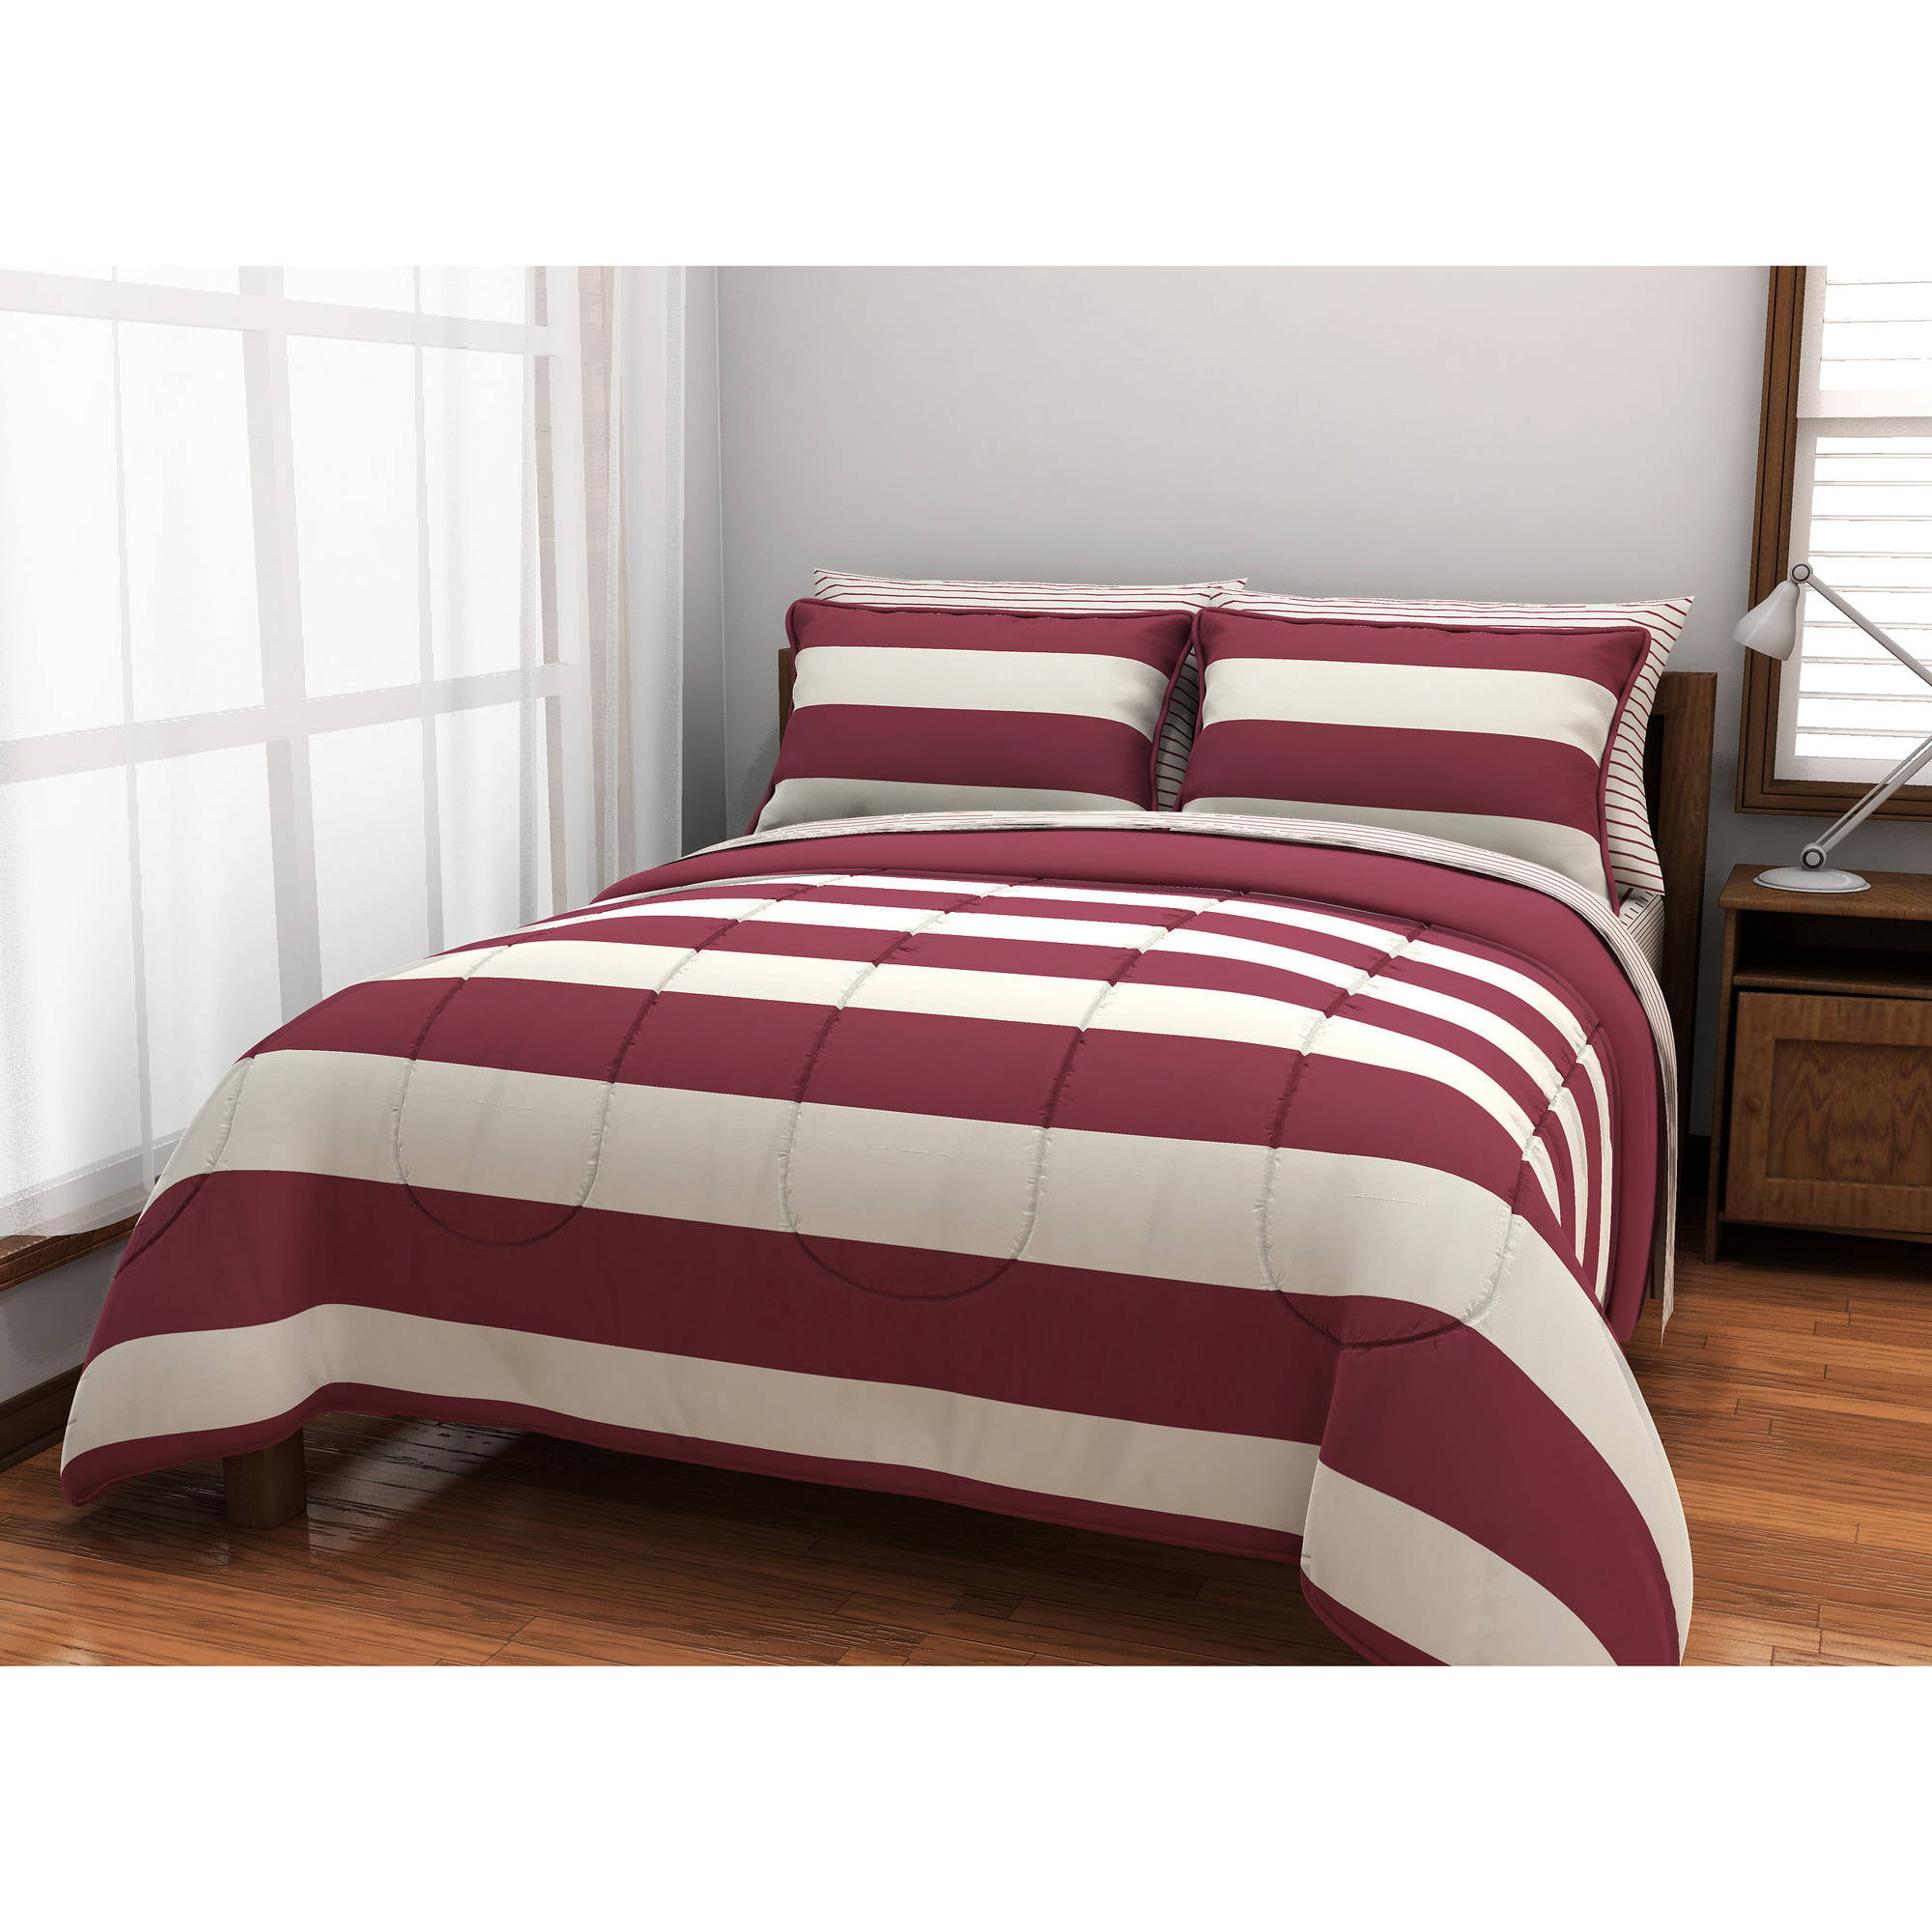 shipping overstock burgundy bath medallion lillian free product bedding today park plush madison comforter set burnout